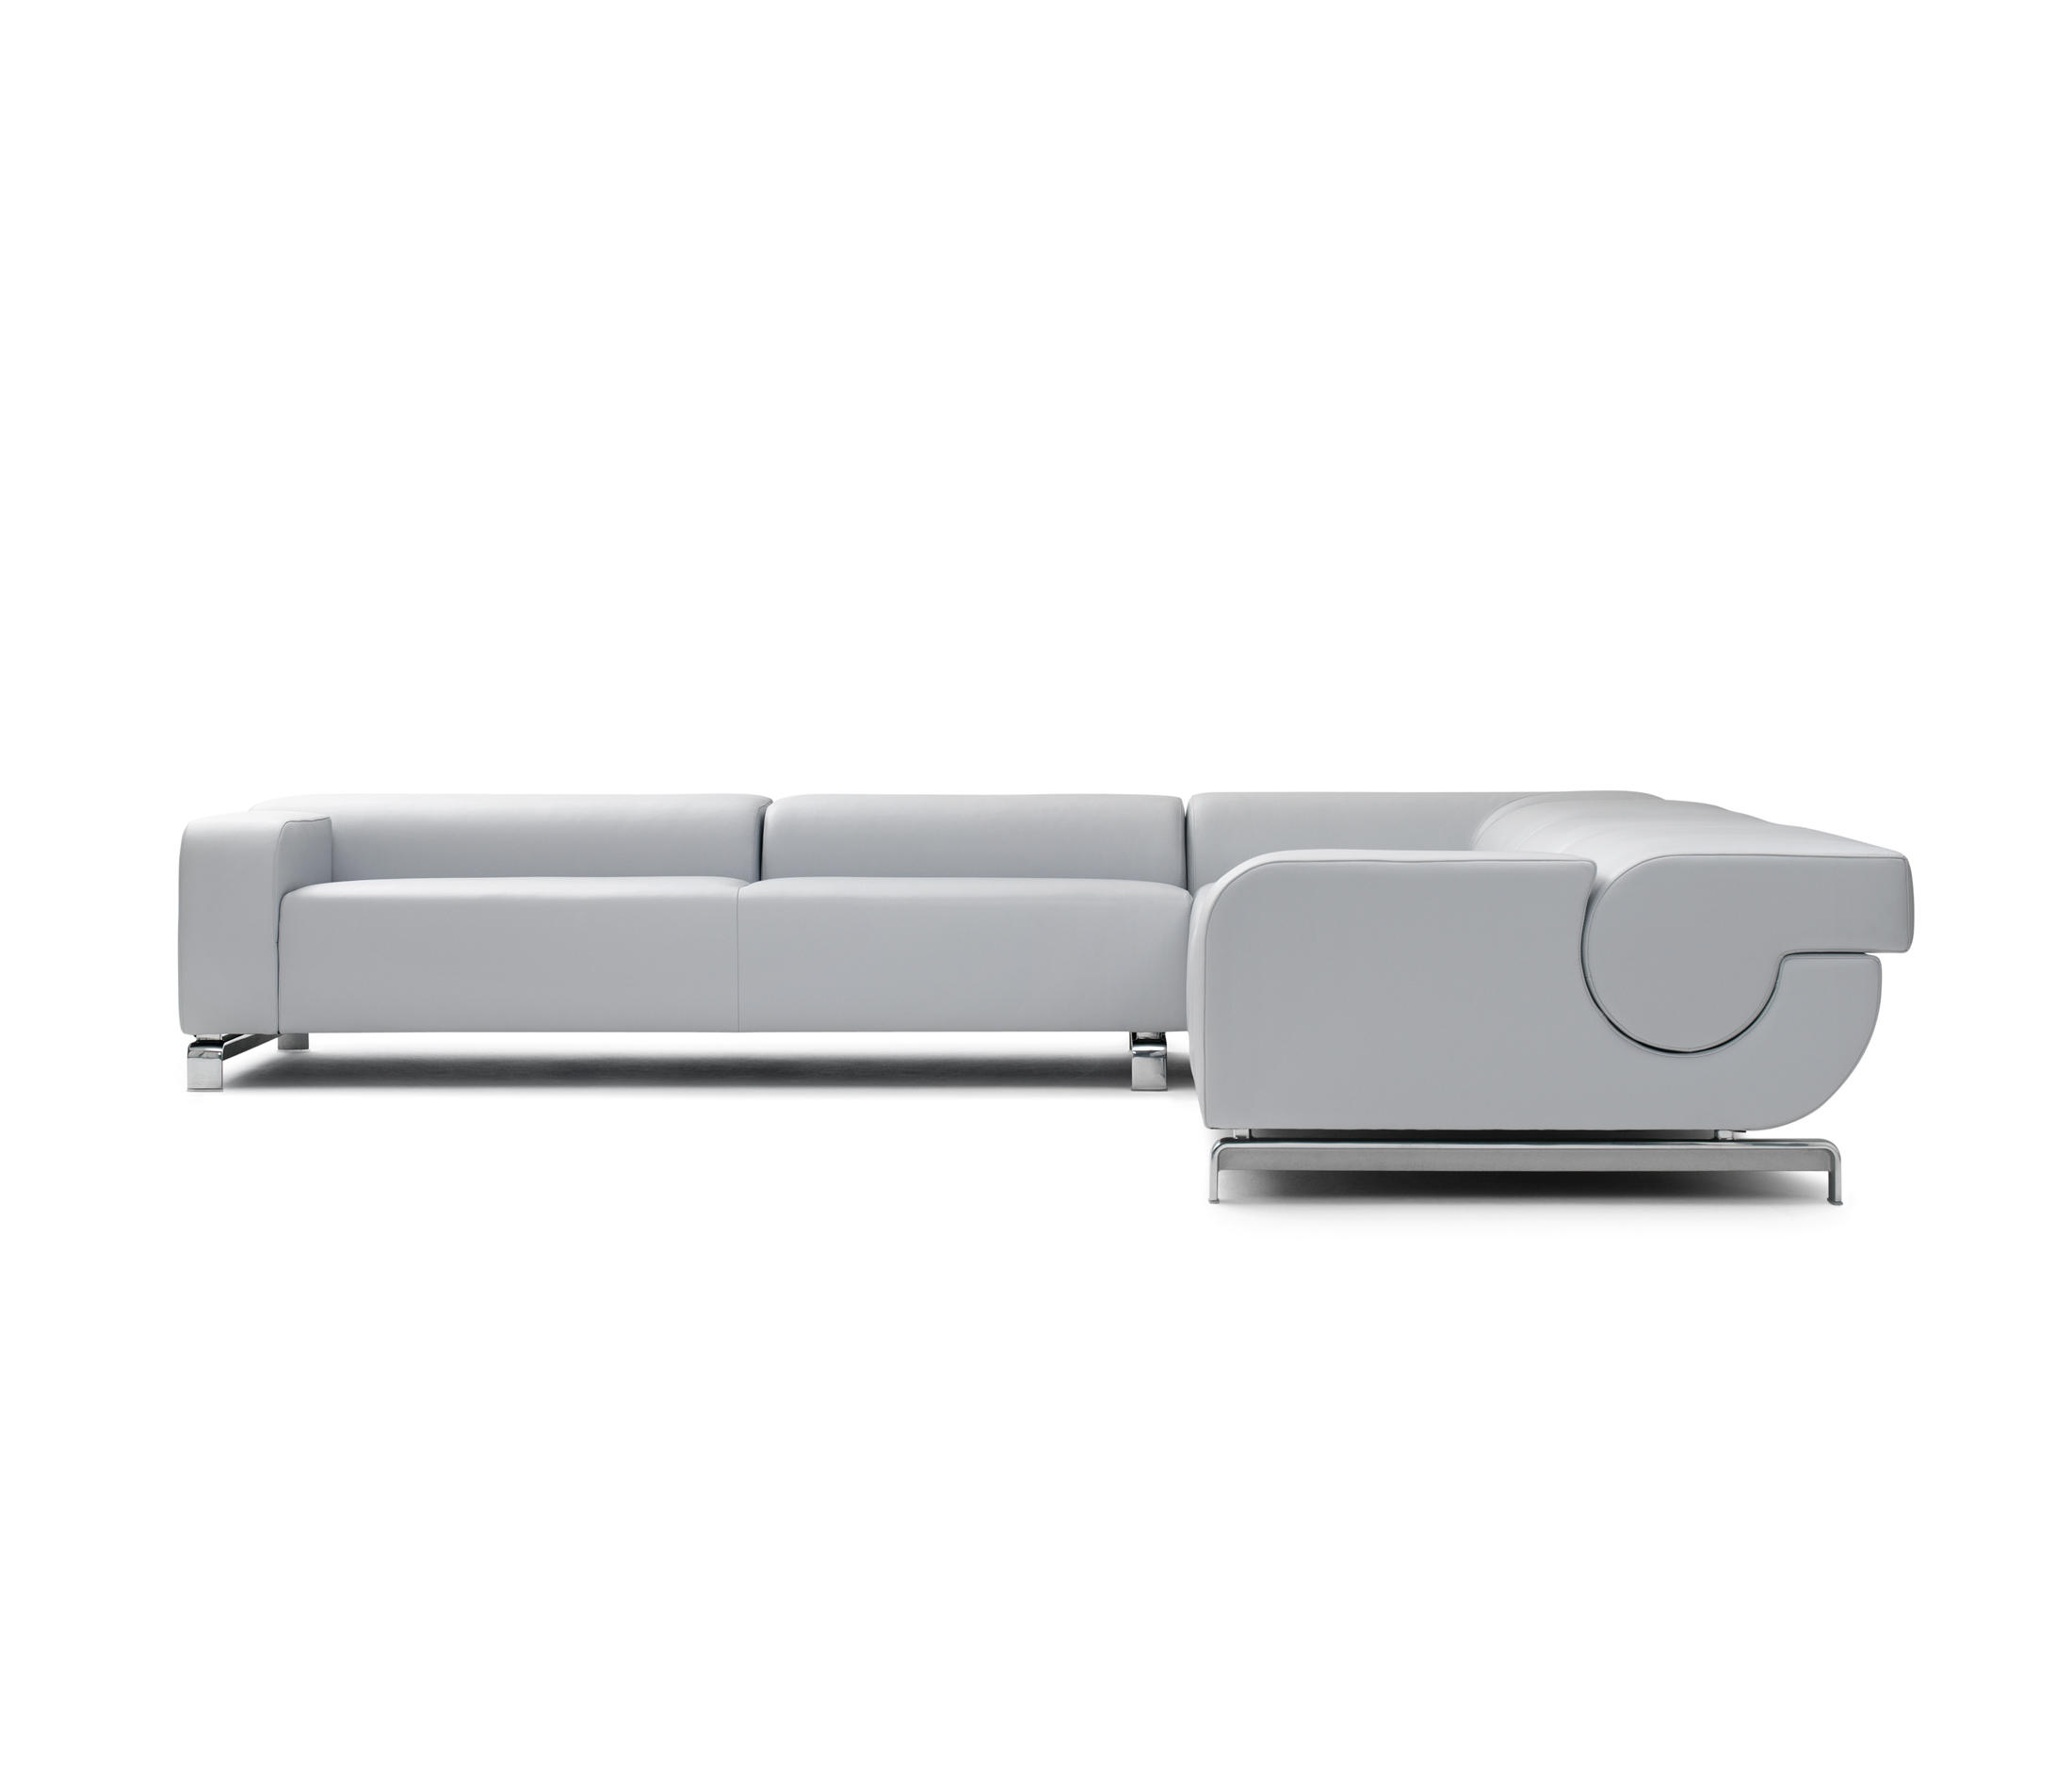 B flat corner sofa sofas from leolux architonic b flat corner sofa by leolux sofas parisarafo Choice Image